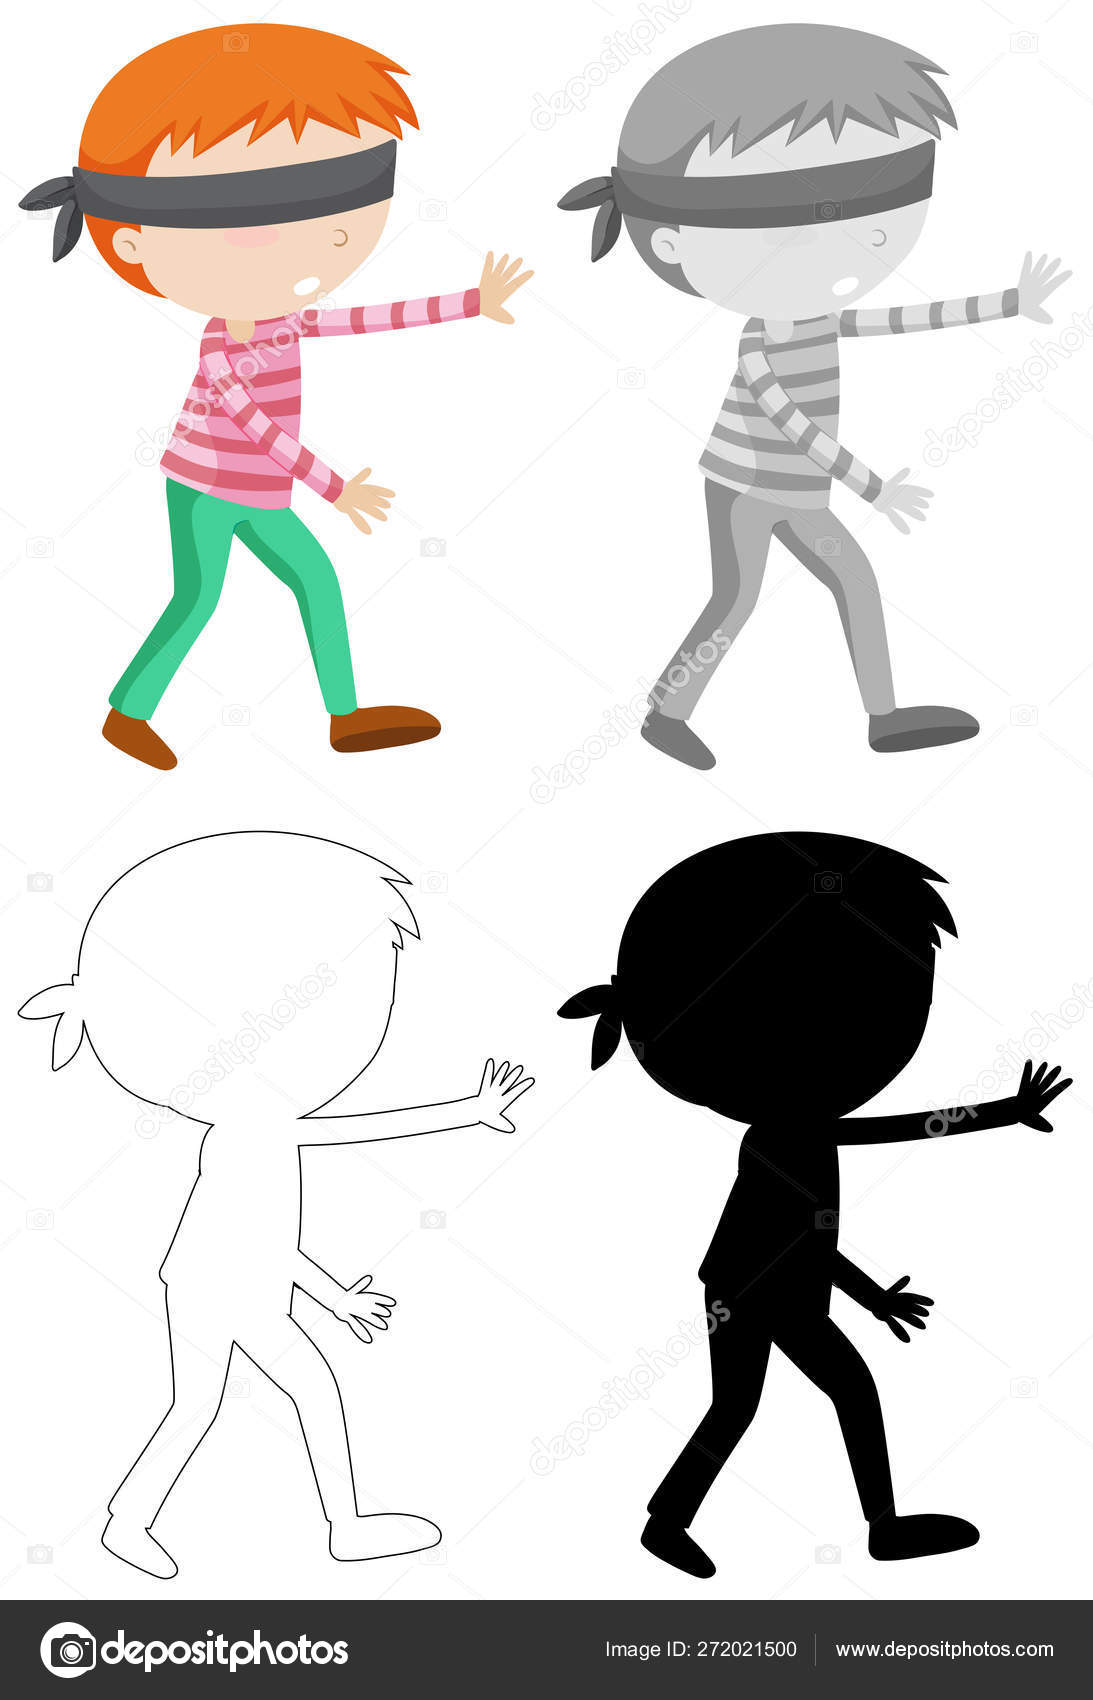 Child Blindfold Images, Stock Photos & Vectors   Shutterstock